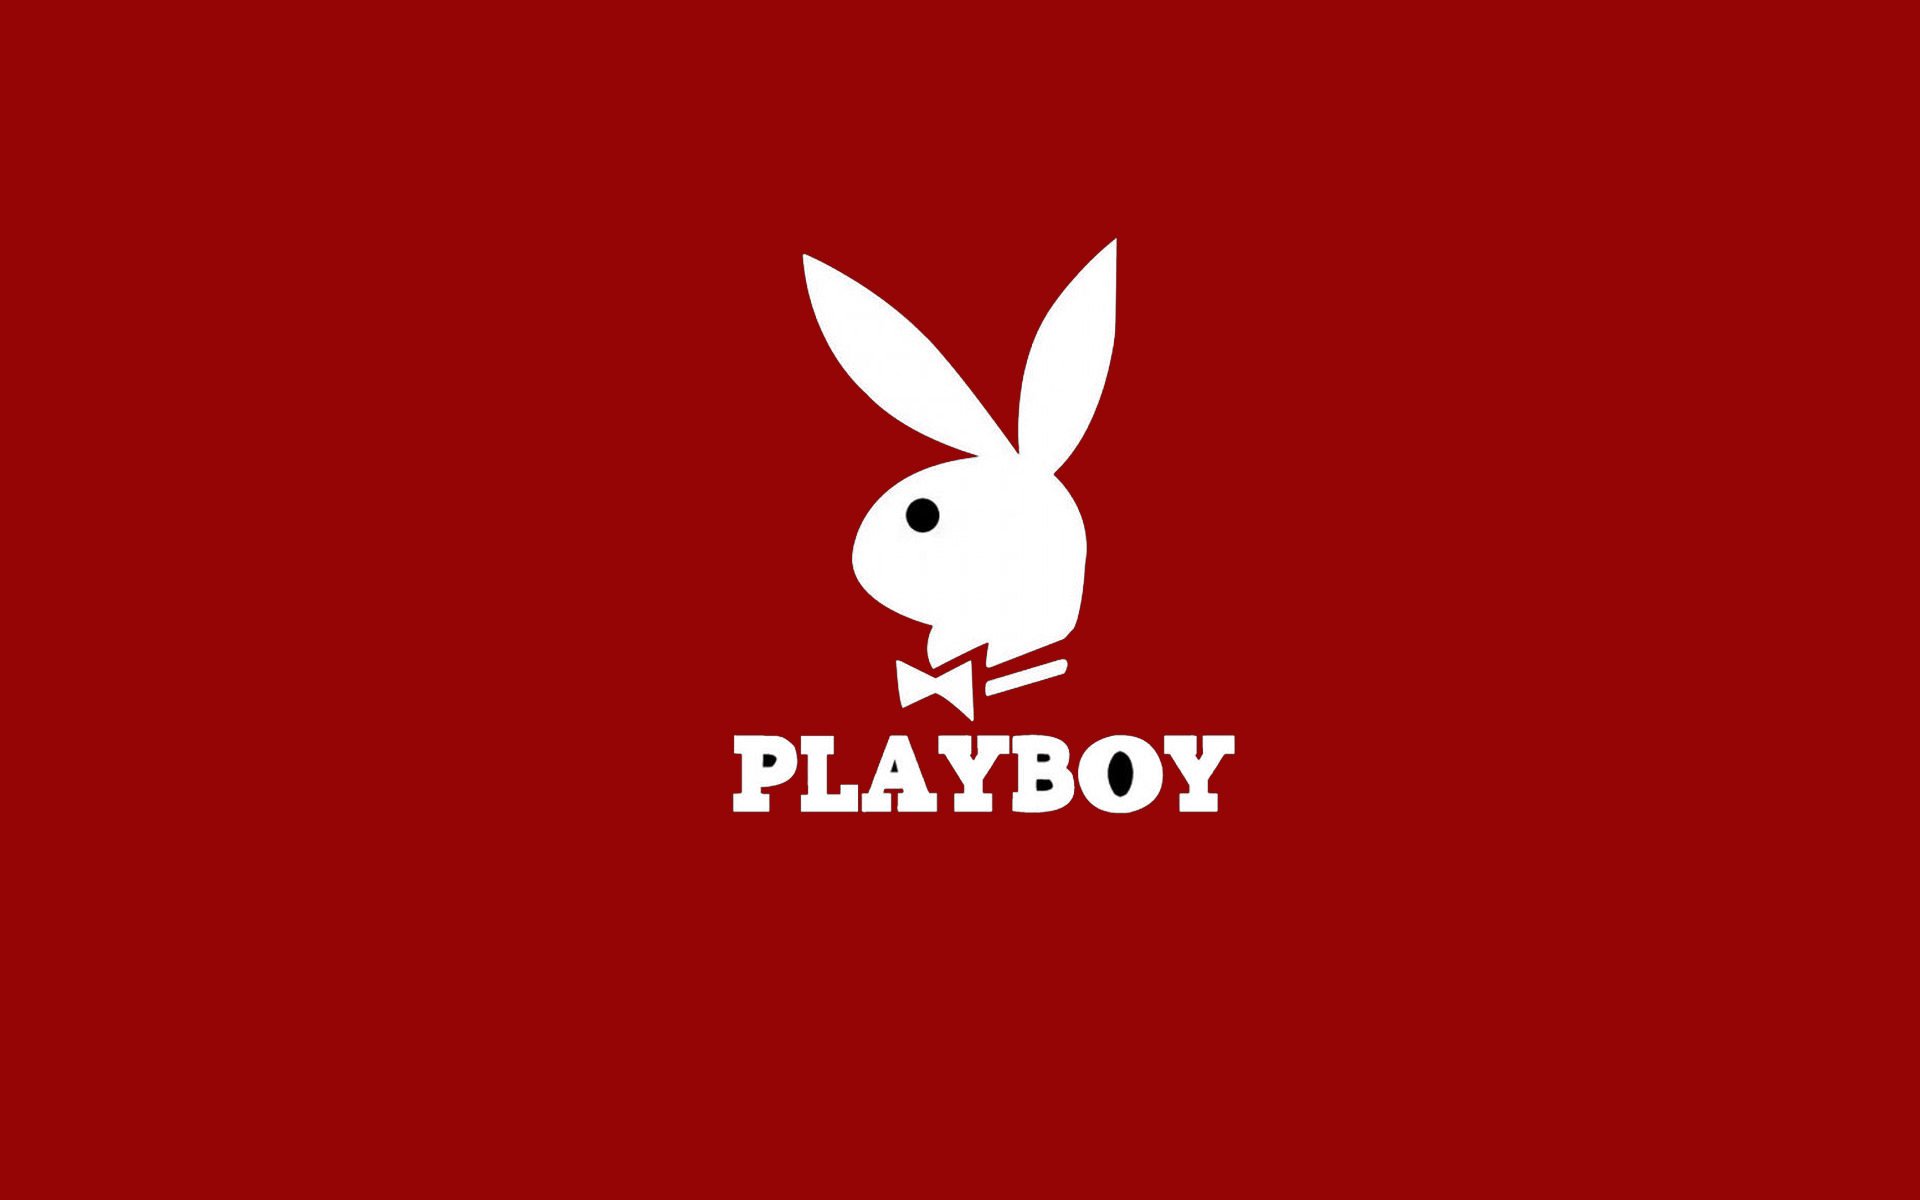 Image PlayBoy Three Wallpapers And Stock Photos